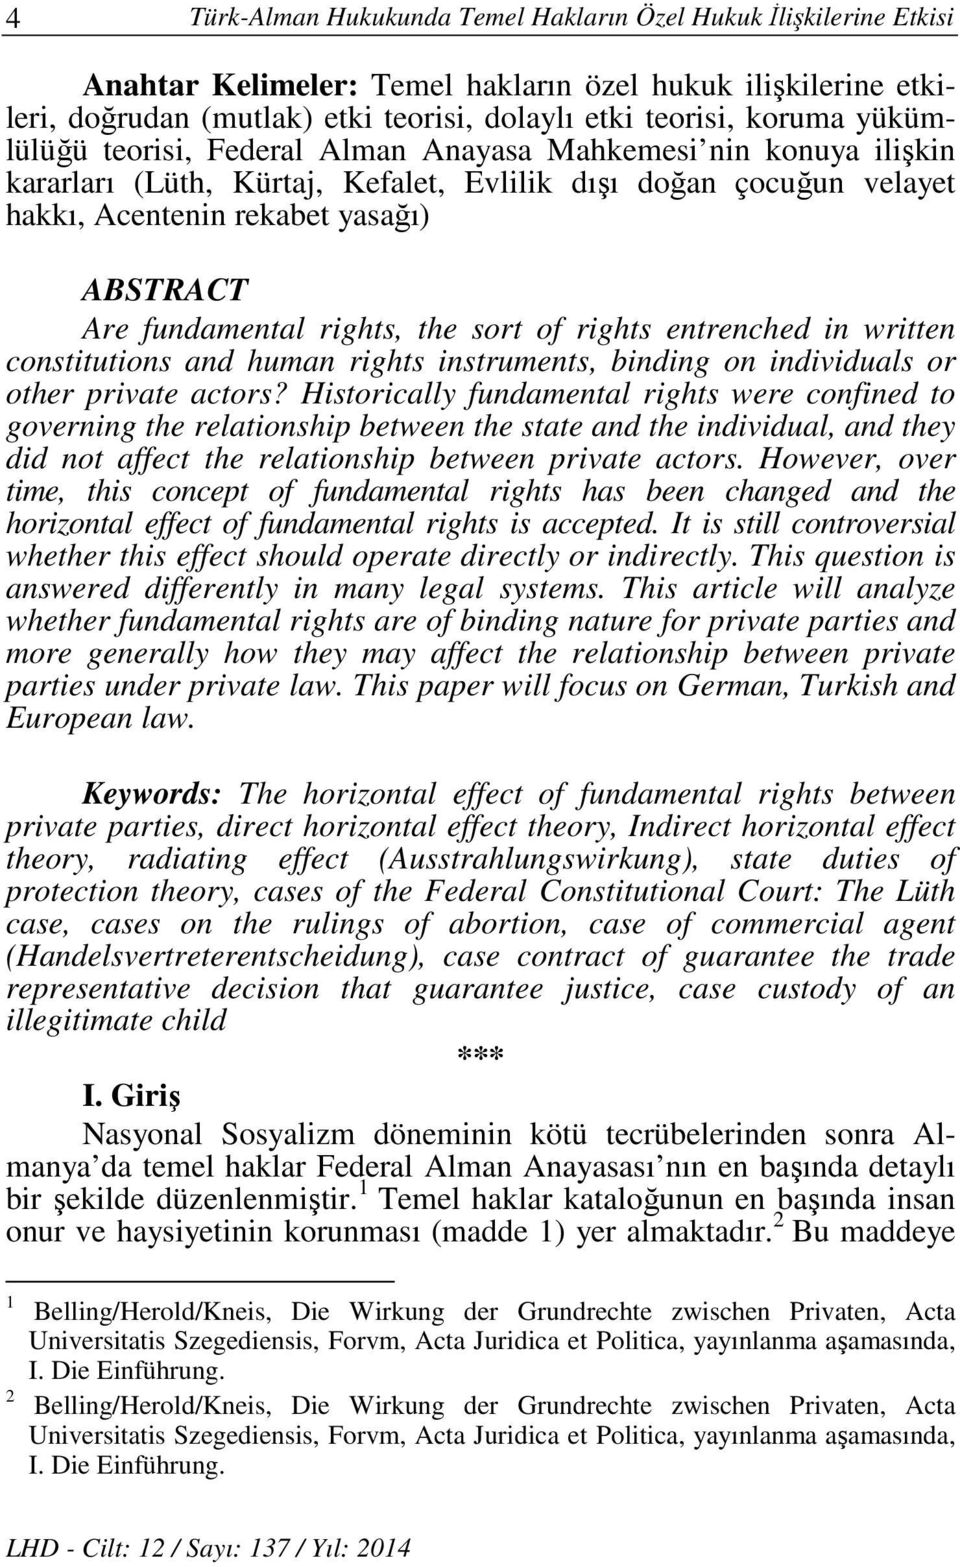 rights, the sort of rights entrenched in written constitutions and human rights instruments, binding on individuals or other private actors?